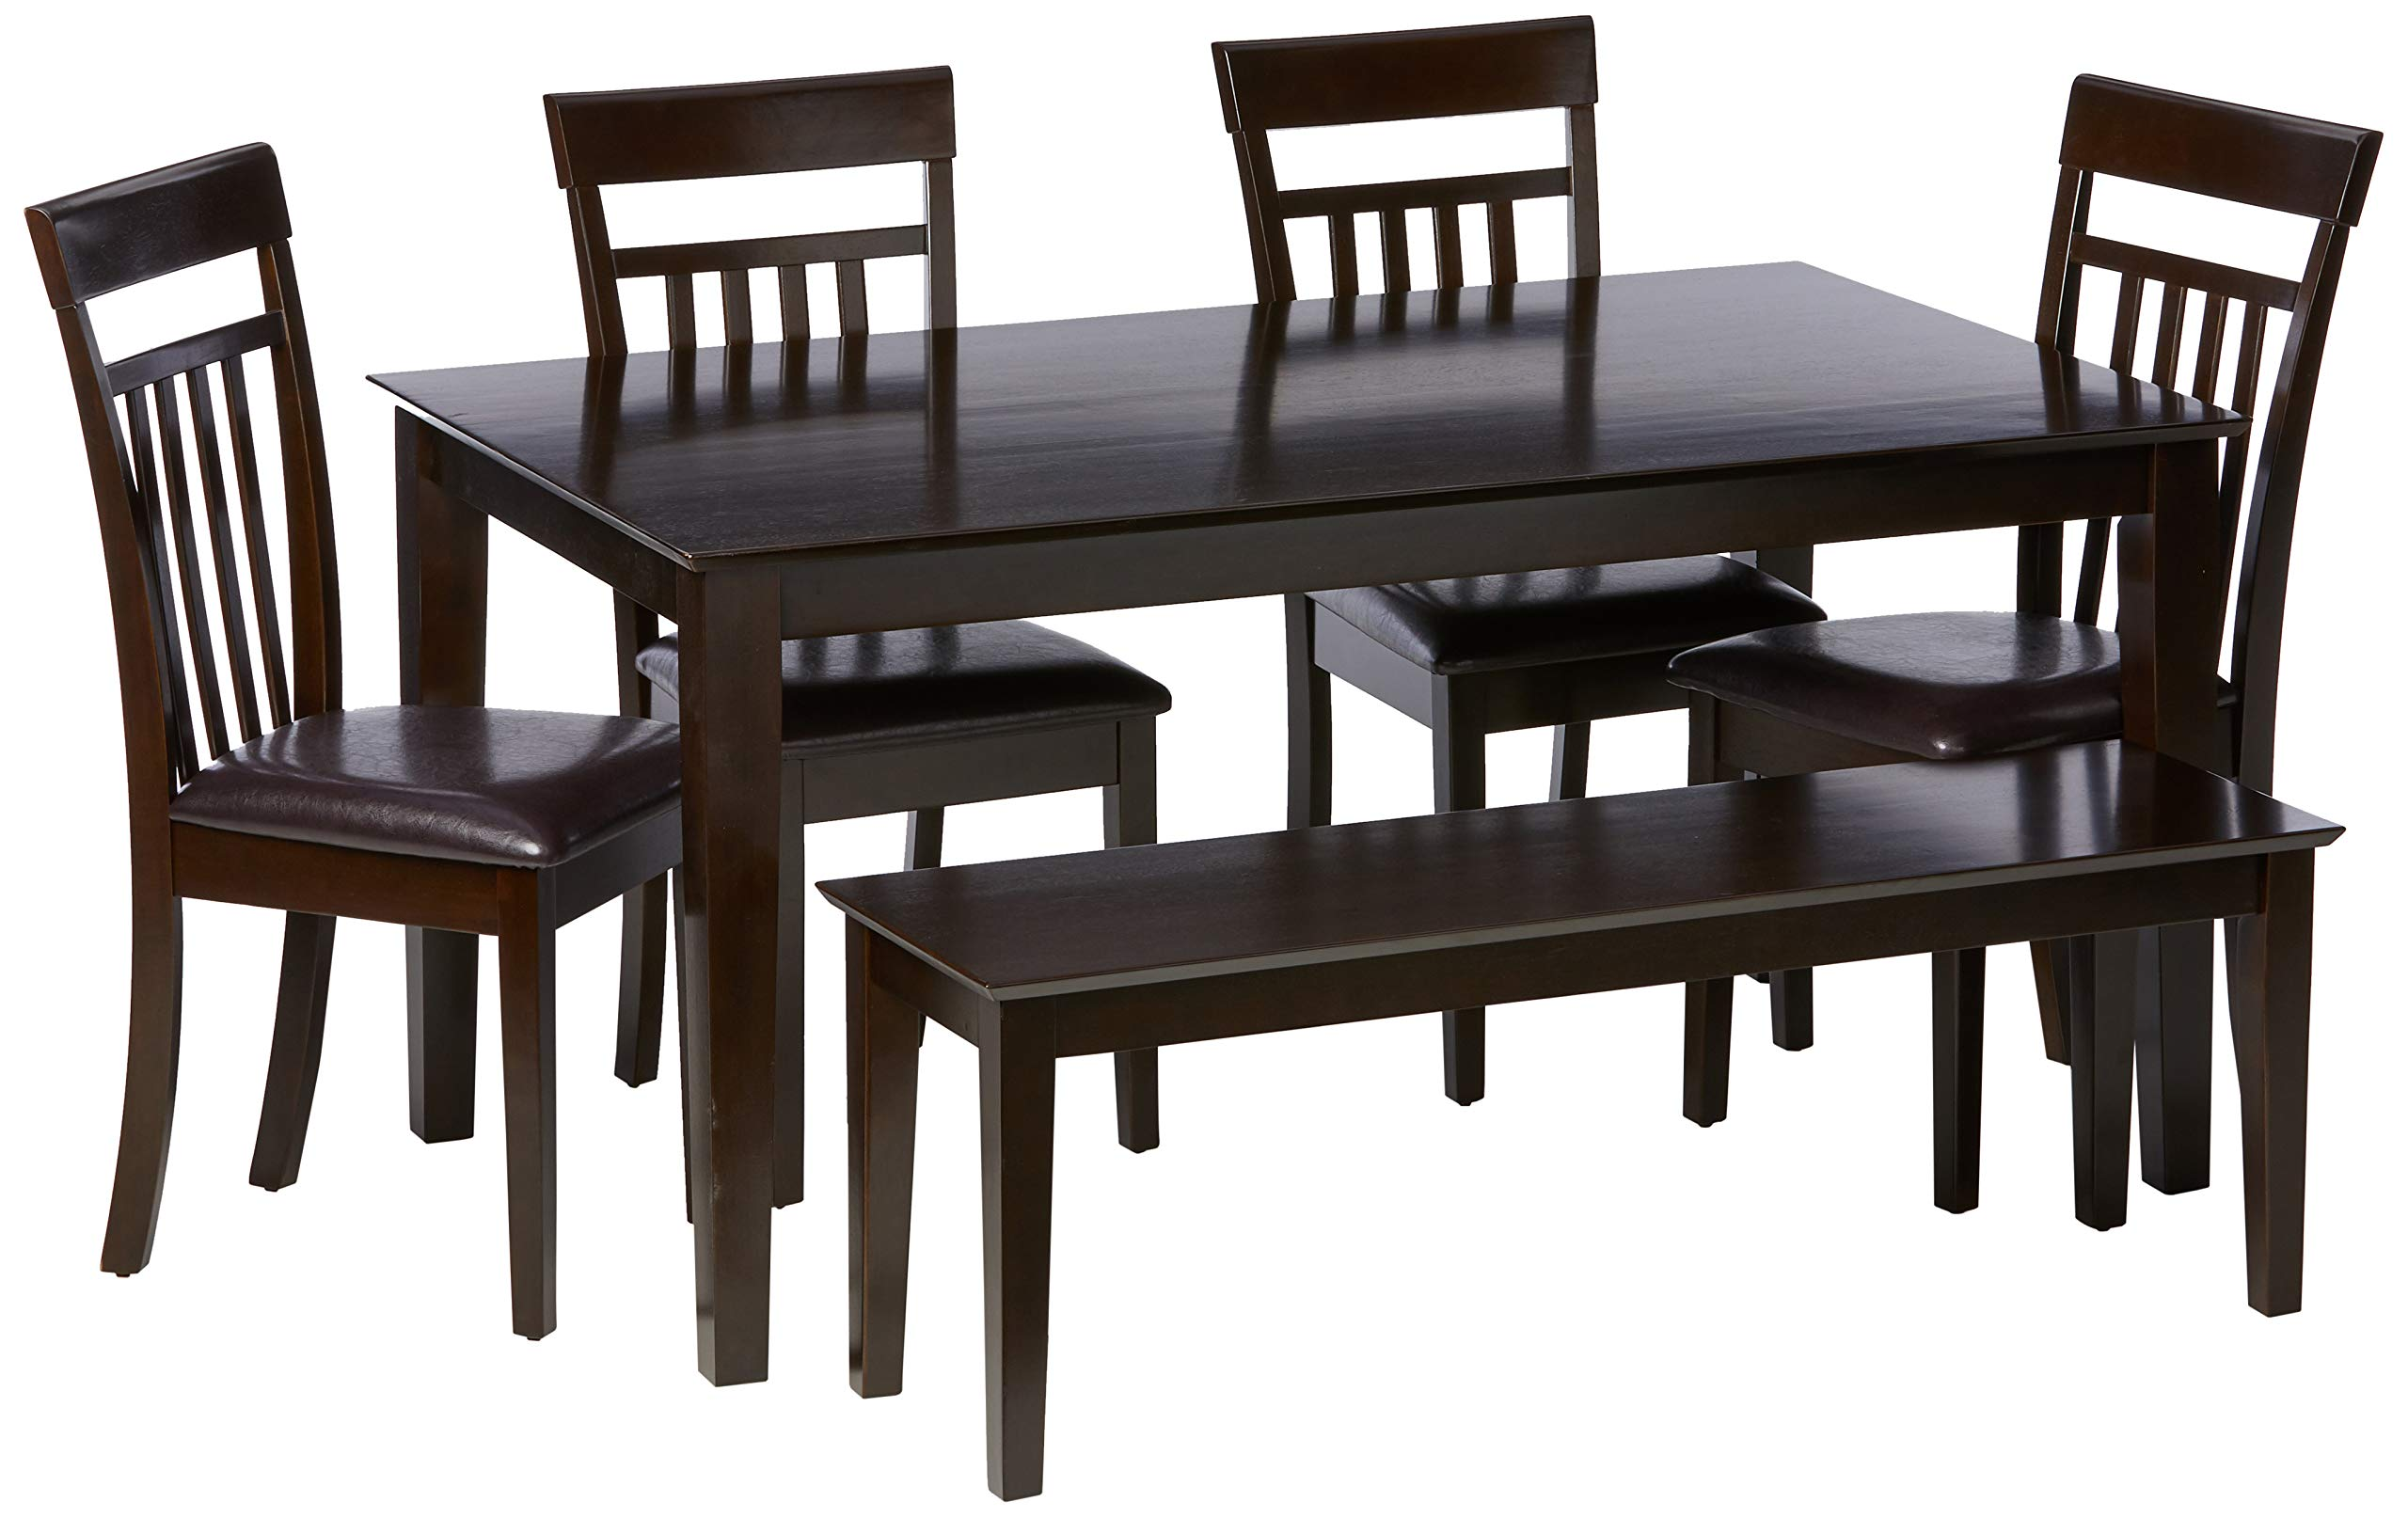 East West Furniture CAP6S-CAP-LC Dining Room Table Set 6 Piece - PU Leather Wood Dining Chairs Seat - Cappuccino Finish Small Dining Table and Dining Bench